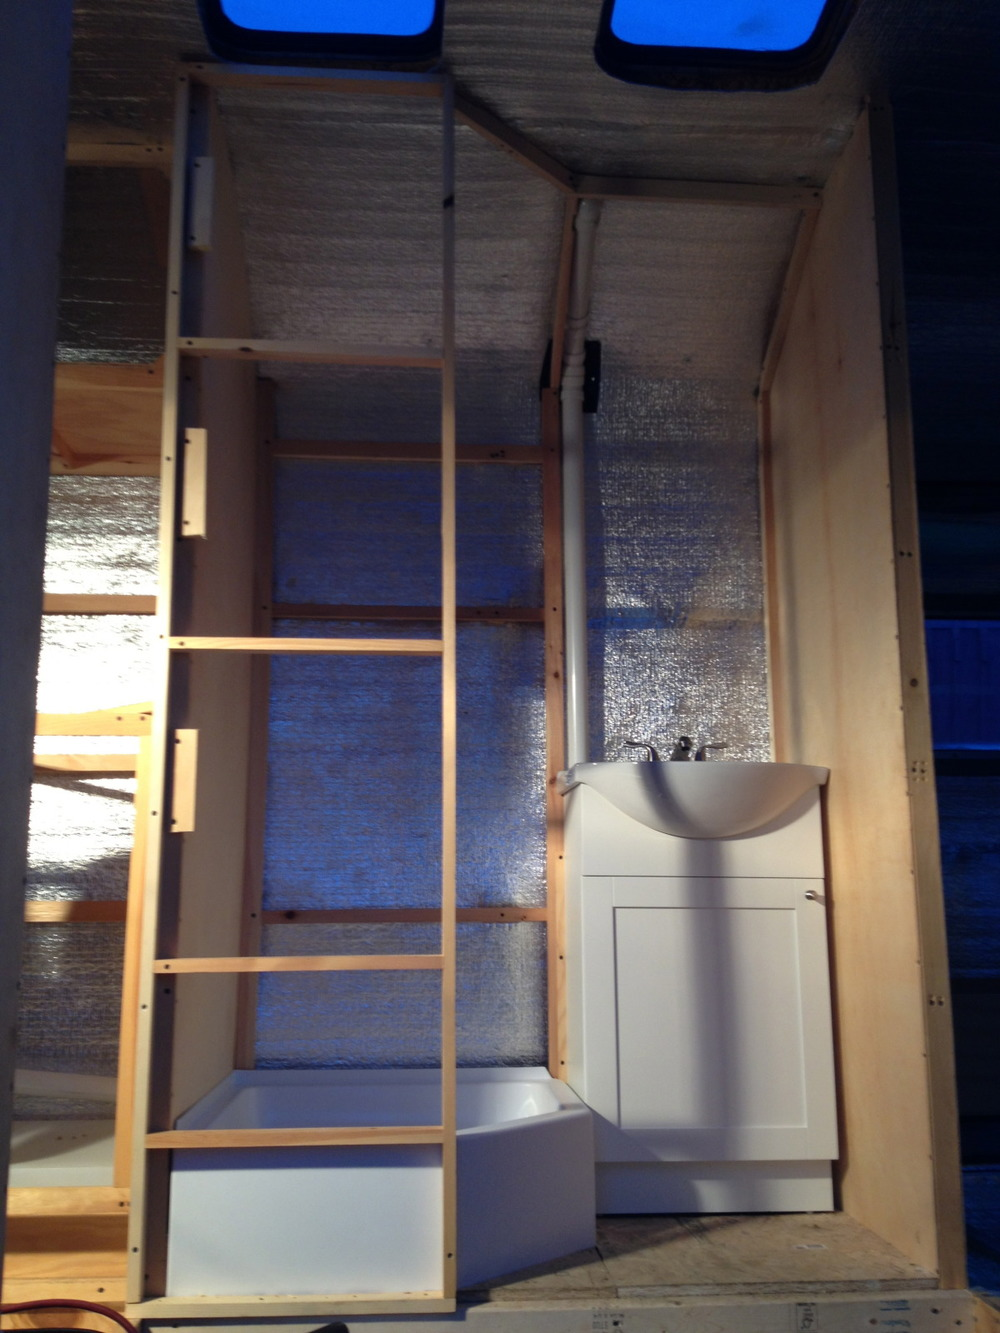 Framing for a section of wall that will double as a hallway wall on one side and a shower stall wall on the other. Bathroom vanity mounted in place over the gray water tank hole and drain pipes.